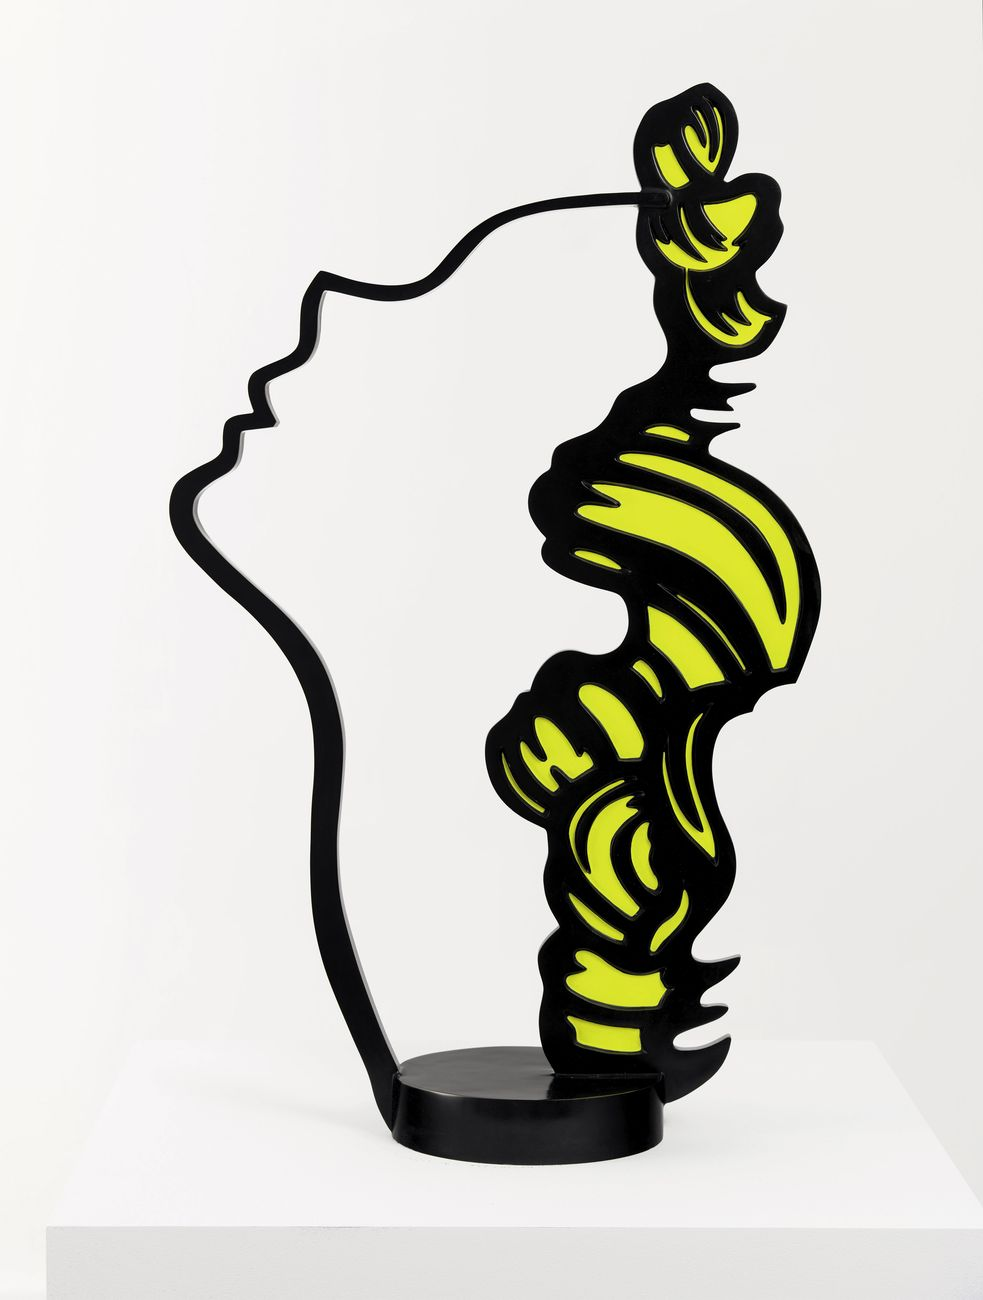 Roy Lichtenstein, Profile Head, 1988. Collezione privata ©Estate of Roy Lichtenstein. Photo Rob McKeever